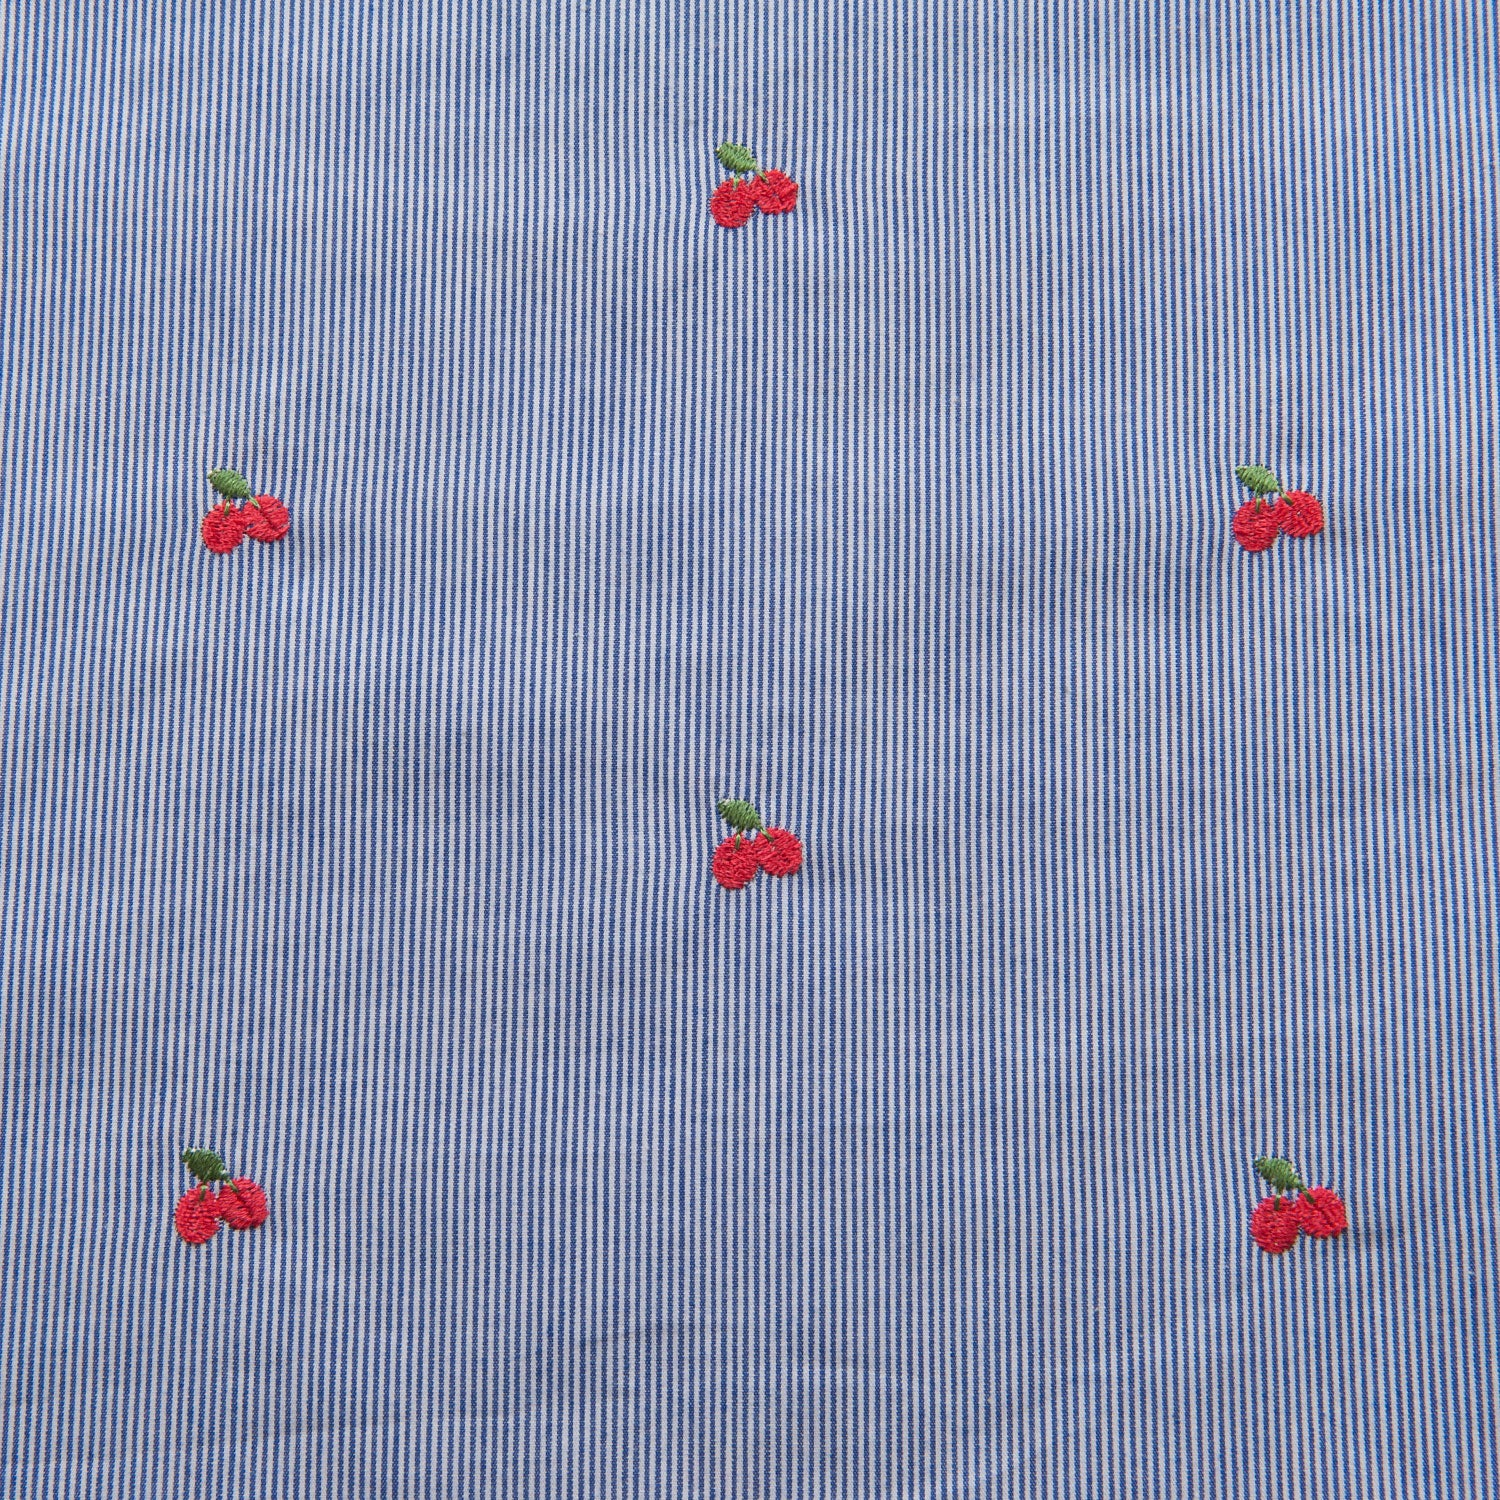 Blue and White Striped Cotton With Embroidered Cherries